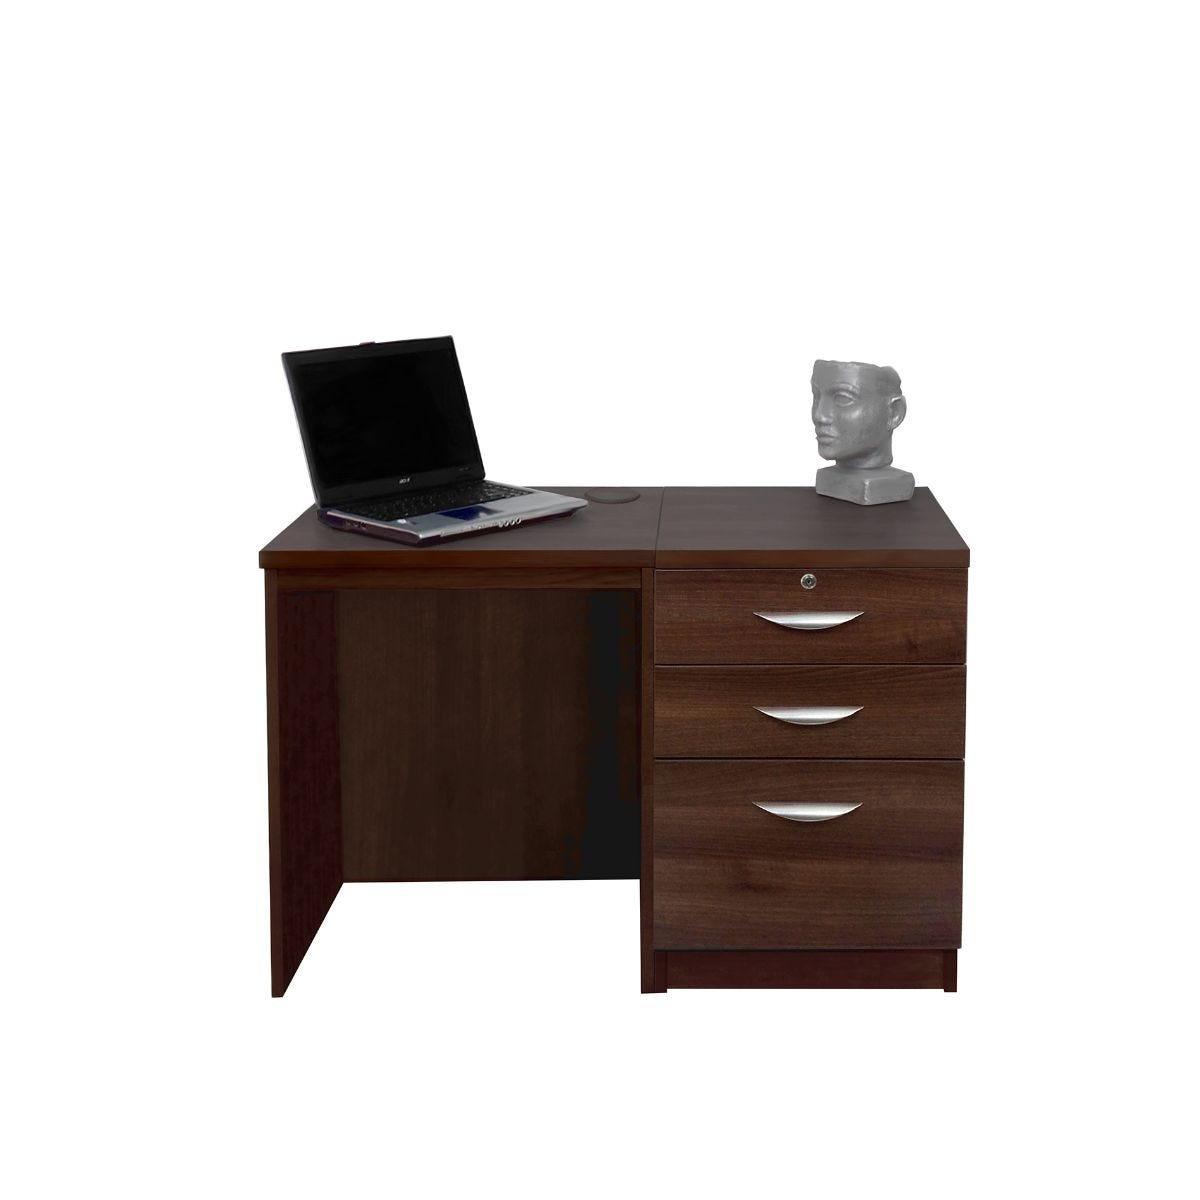 R White Home Office Desk Set with Drawers, walnut